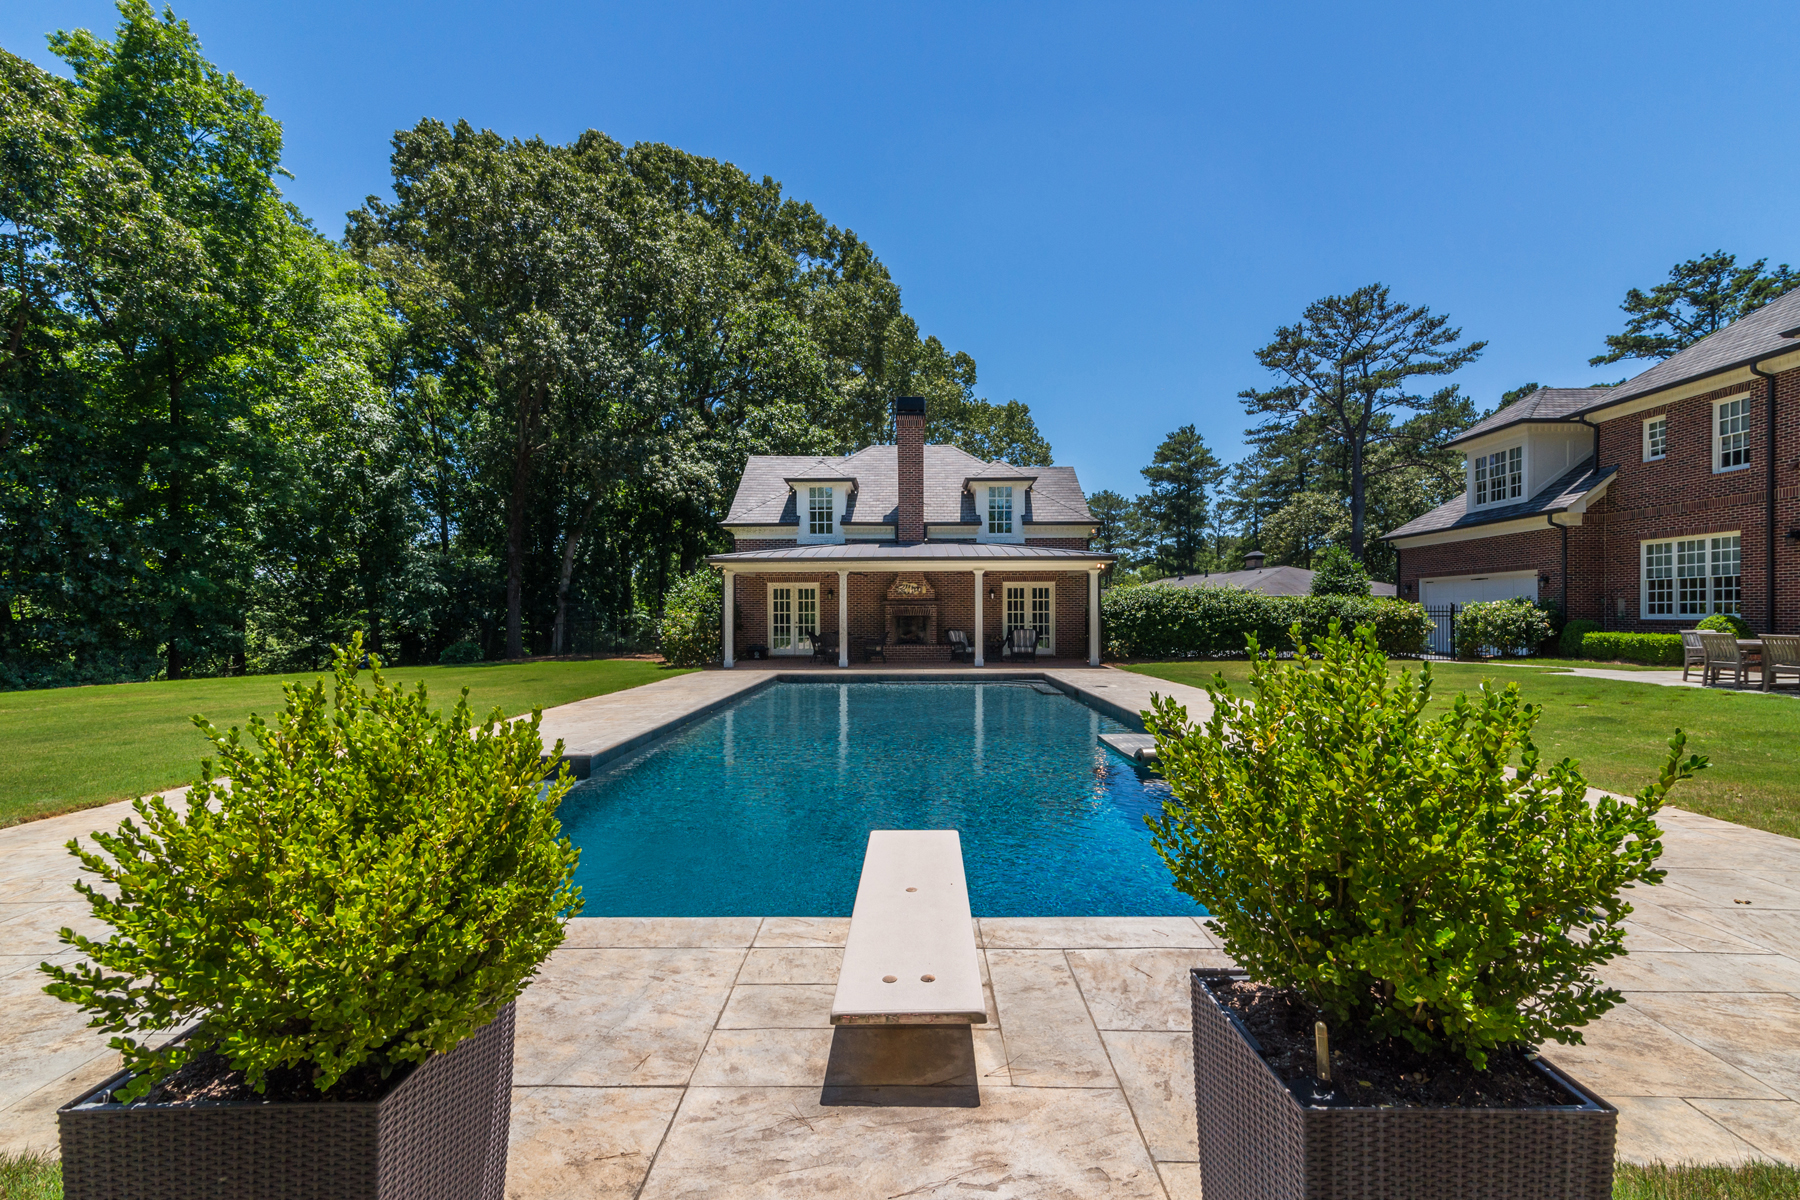 Additional photo for property listing at Beautifully Appointed Home In Buckhead 2761 Ridgewood Road Atlanta, Georgië 30327 Verenigde Staten